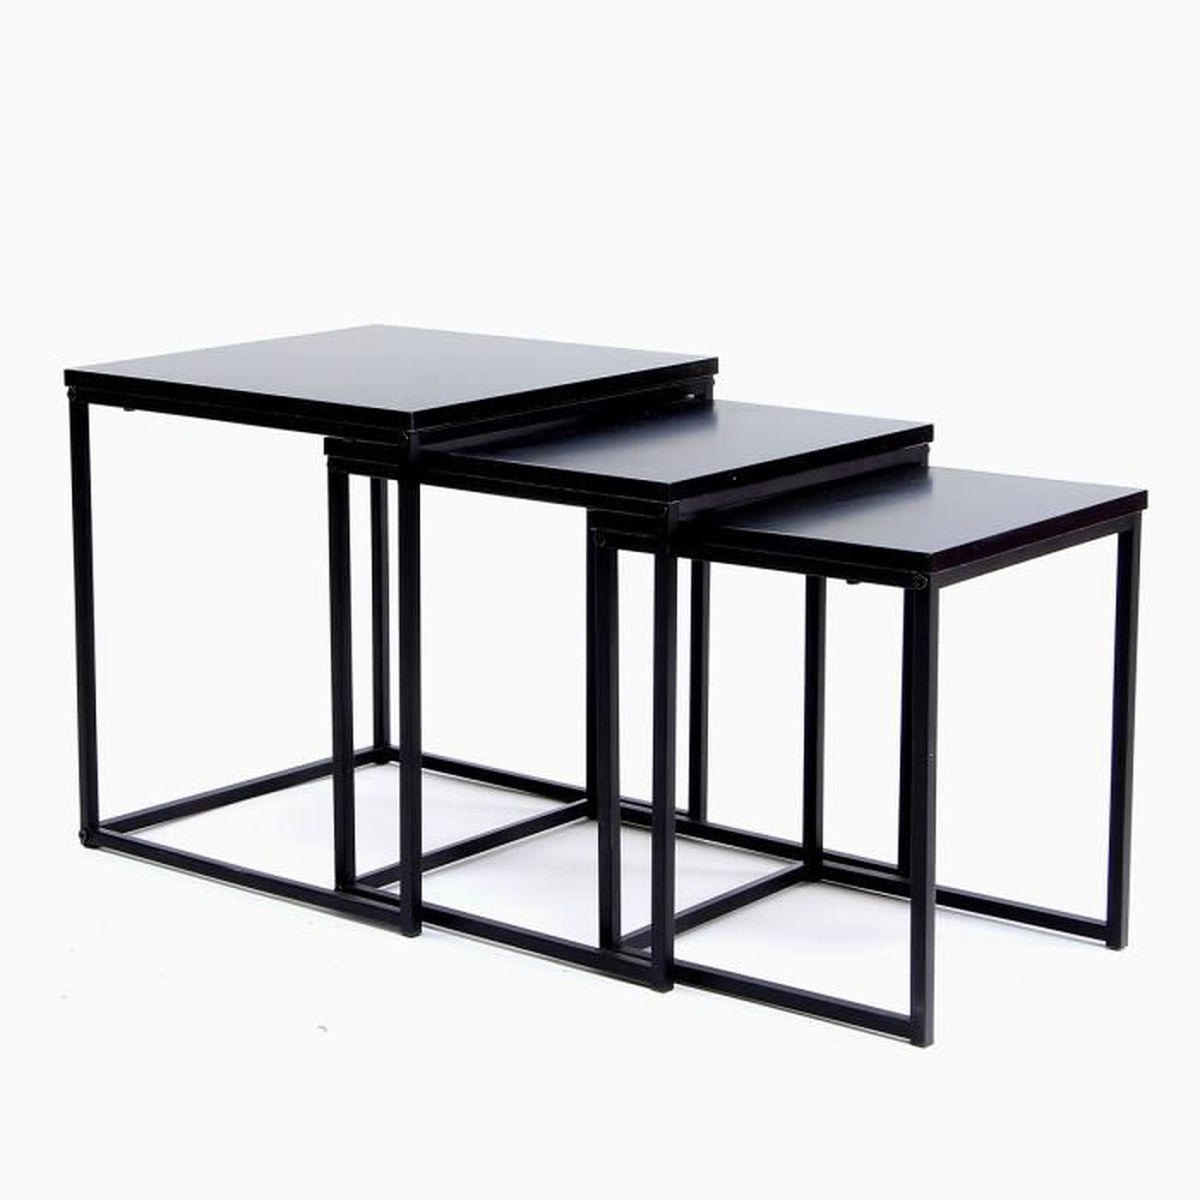 table gigogne forme carr set de 3 couleur noire achat vente table gigogne table gigogne. Black Bedroom Furniture Sets. Home Design Ideas